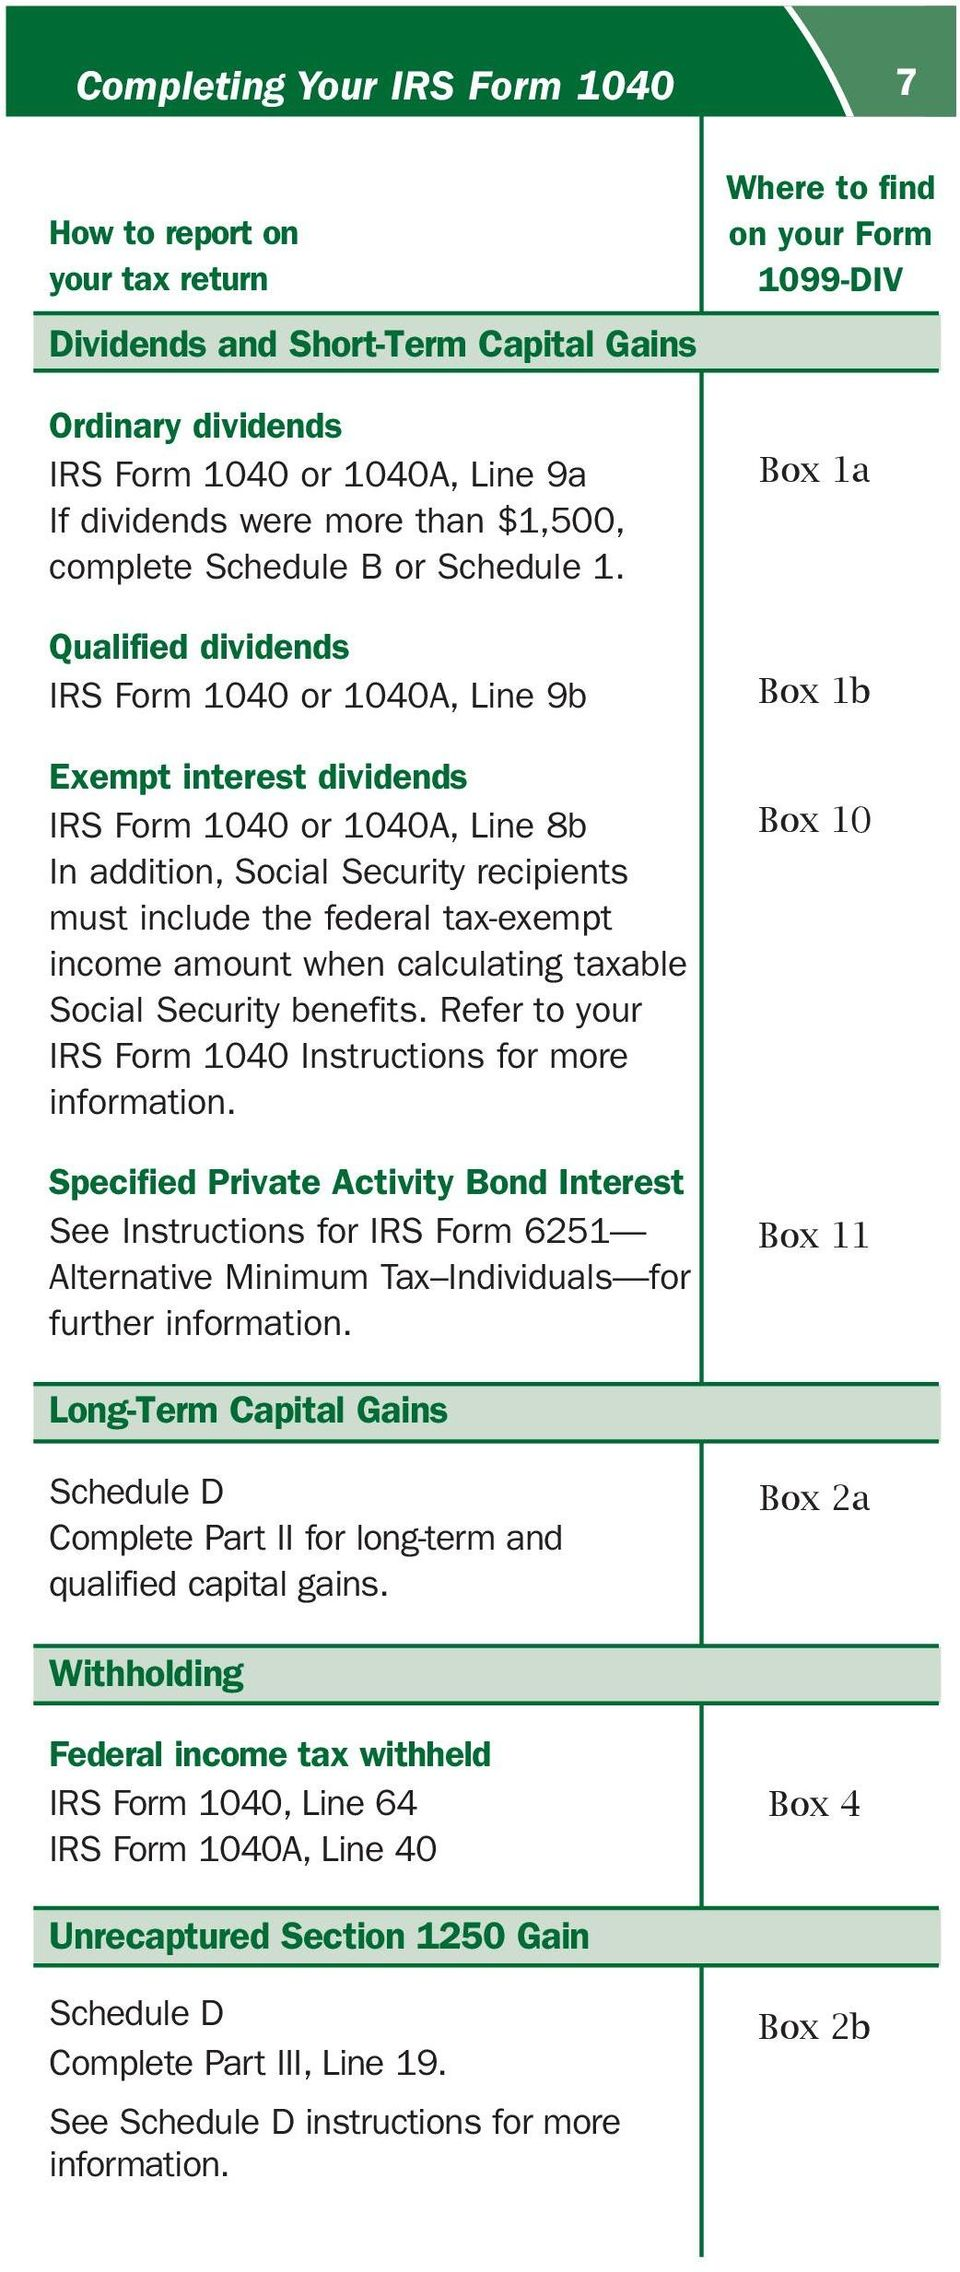 Form 1099-DIV: Dividends and Distributions Tax Form Mail Date ...